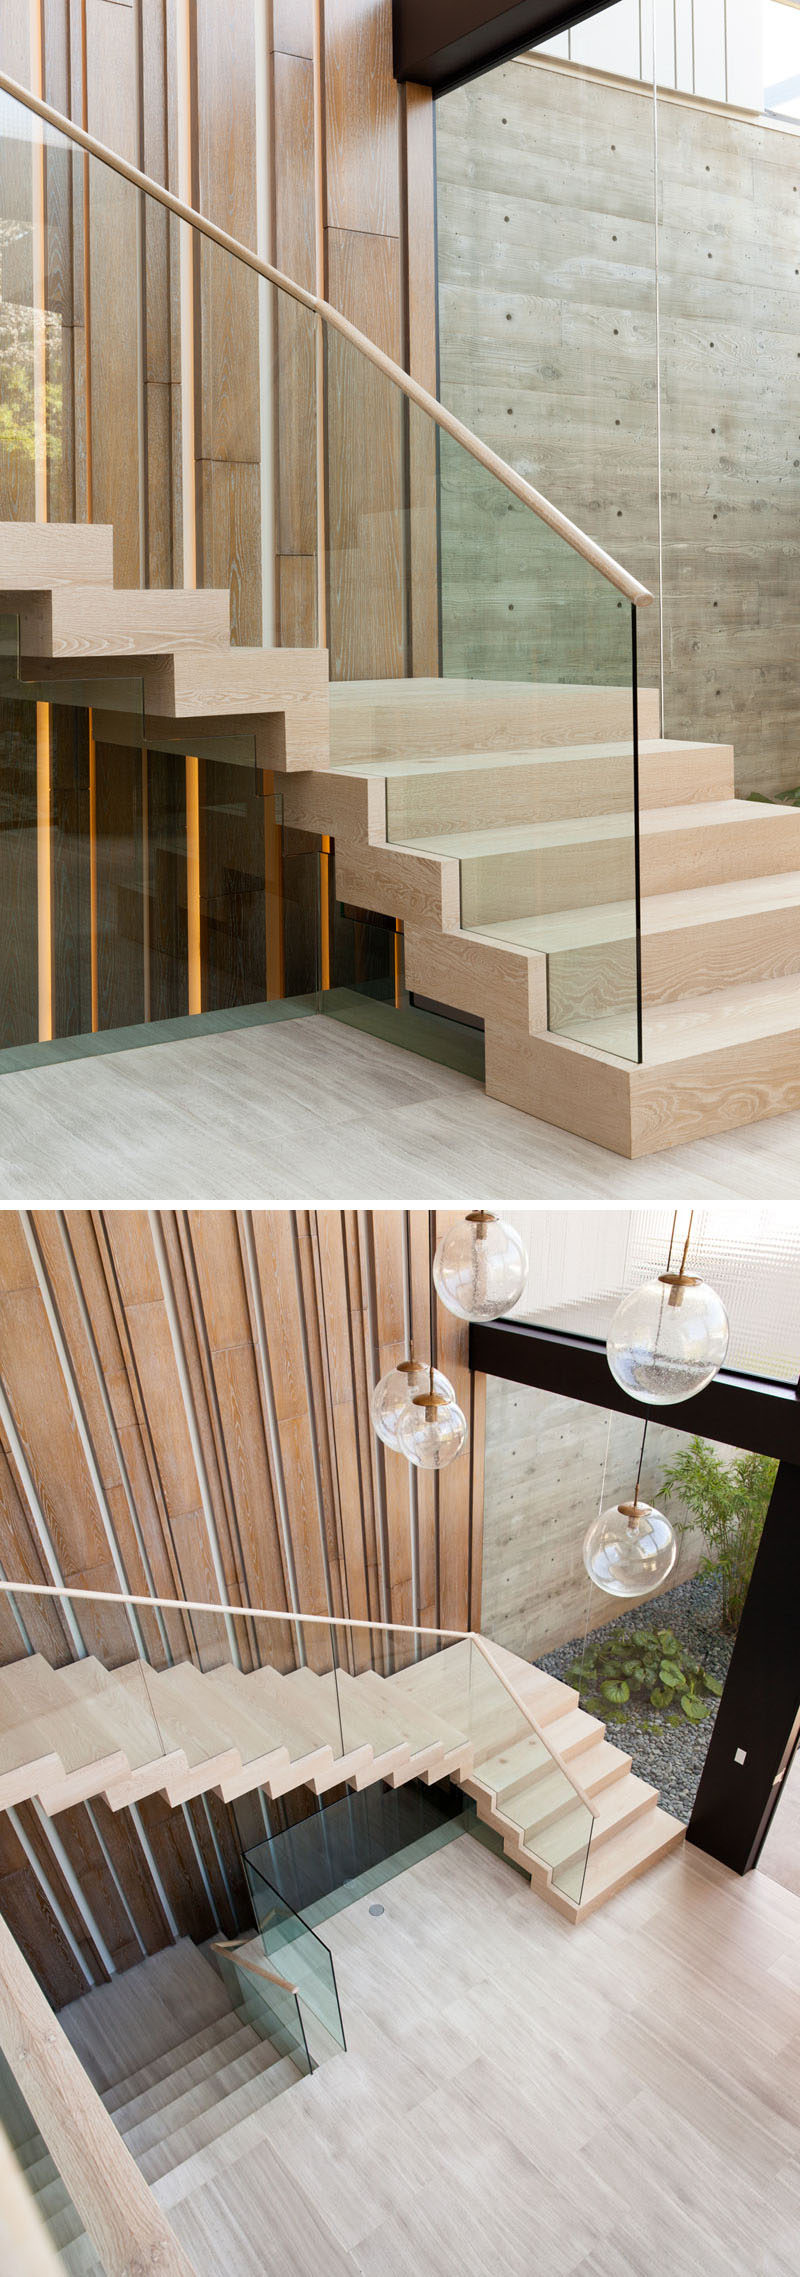 In this modern house, light wood stairs lead up to the second floor of the home, and a vertical wood accent wall with hidden lighting helps to emphasize the height of the foyer.